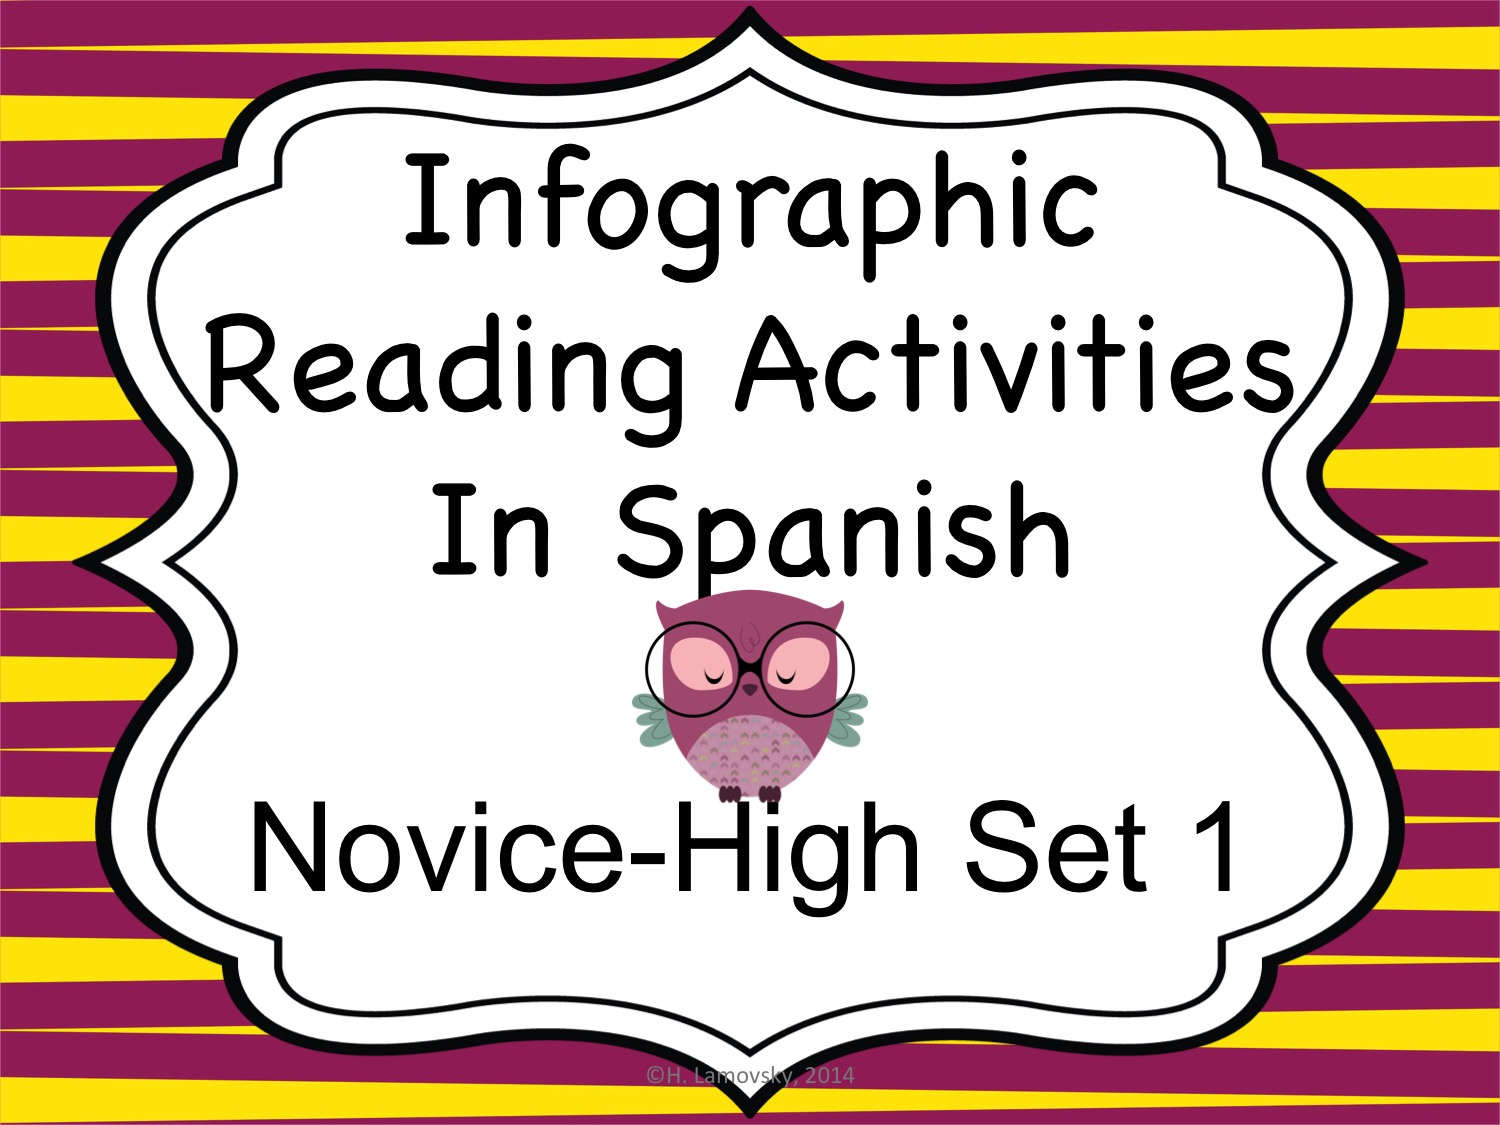 Spanish Infographic Reading Activities - Novice High